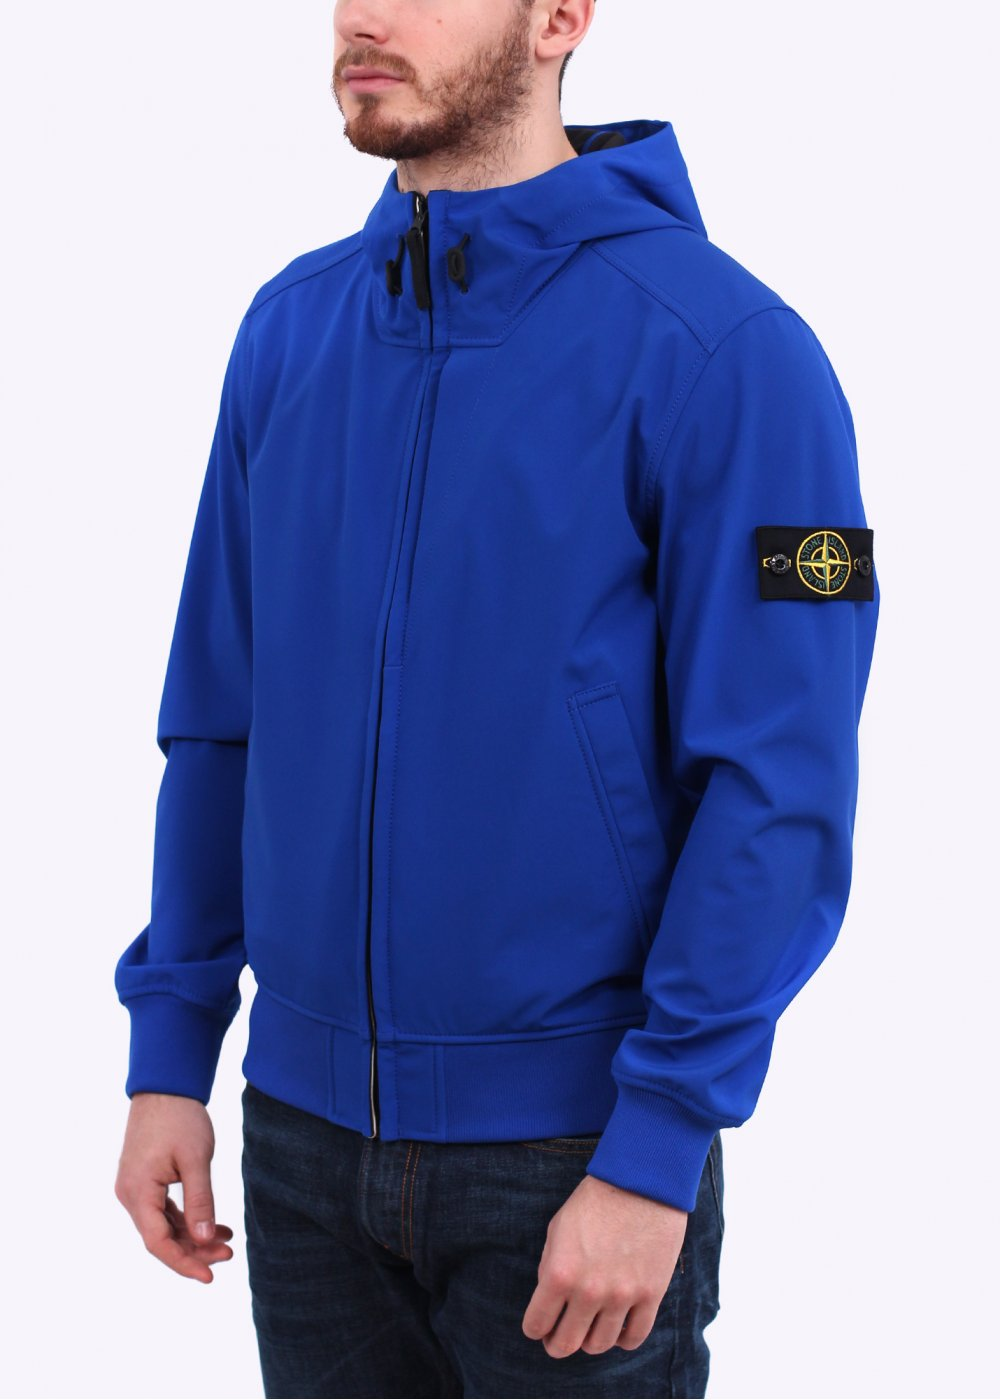 stone island ss15 light soft shell jacket royal blue